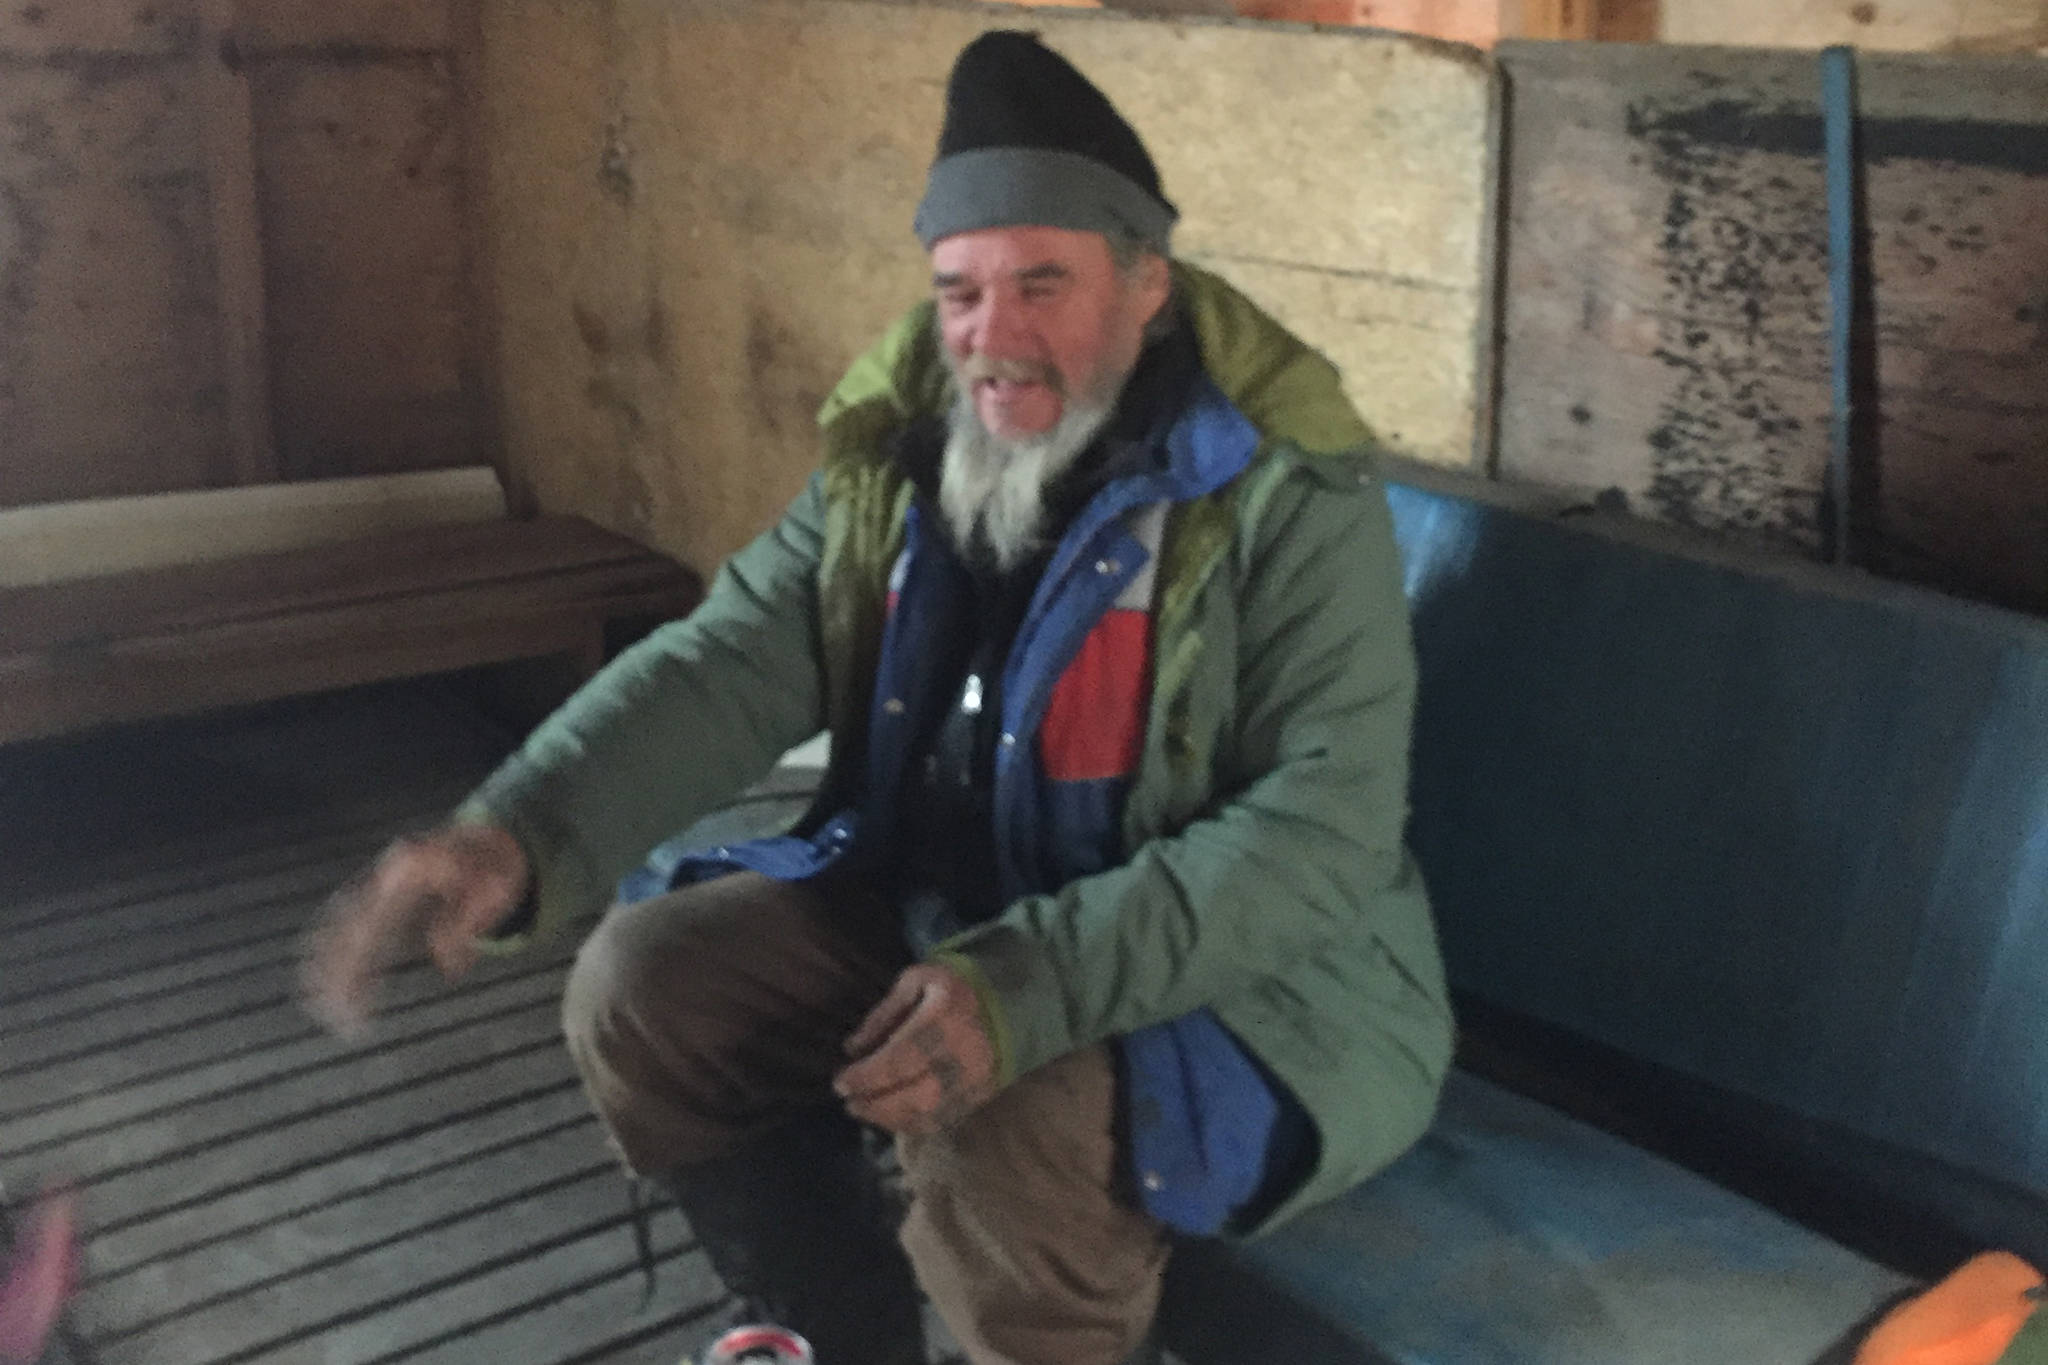 Okanagan homeless man back on the streets after brief shelter